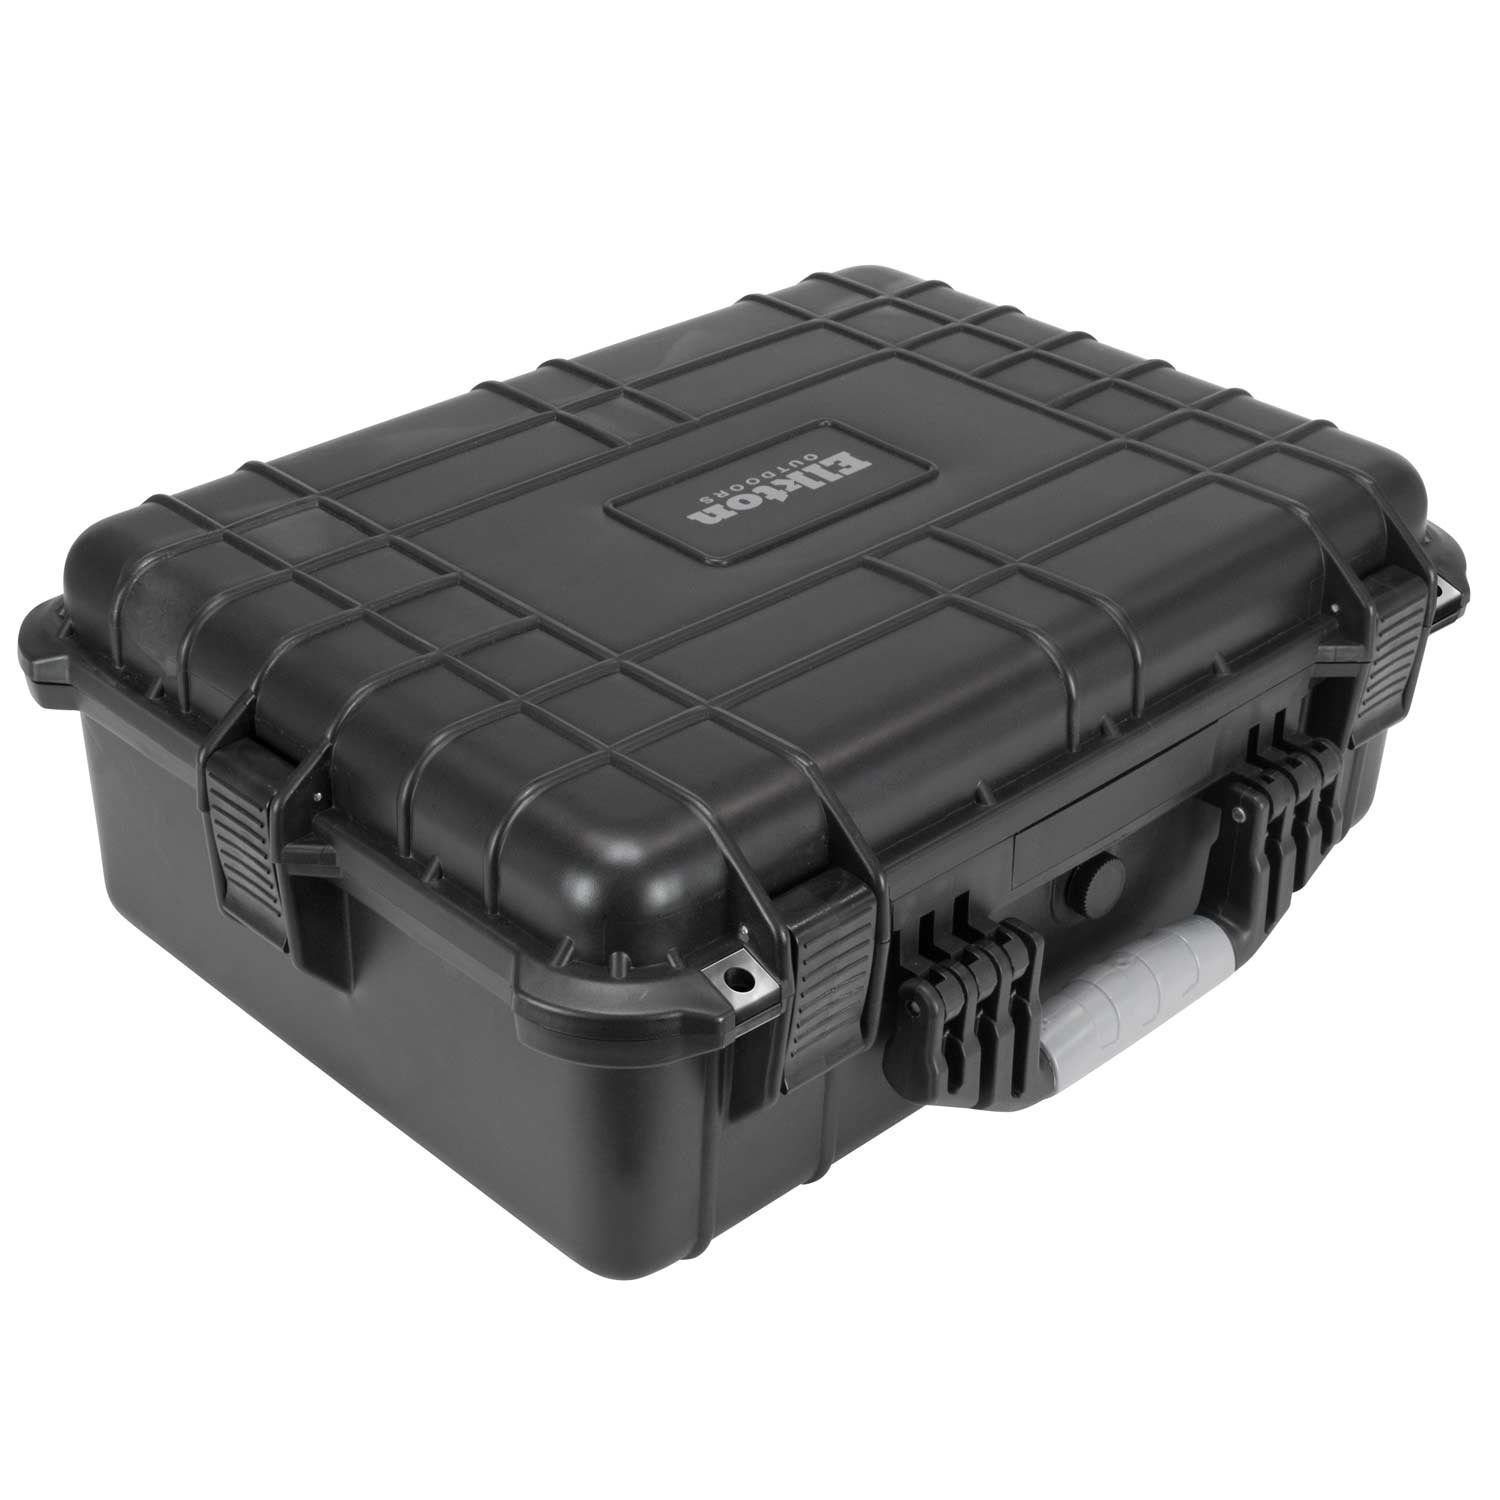 Elkton Outdoors Hard Gun Case: Fully Customizable Pistol Case: Holds 5 Handguns and 10 Magazines: Crush Resistant & Waterproof! by Elkton Outdoors (Image #3)